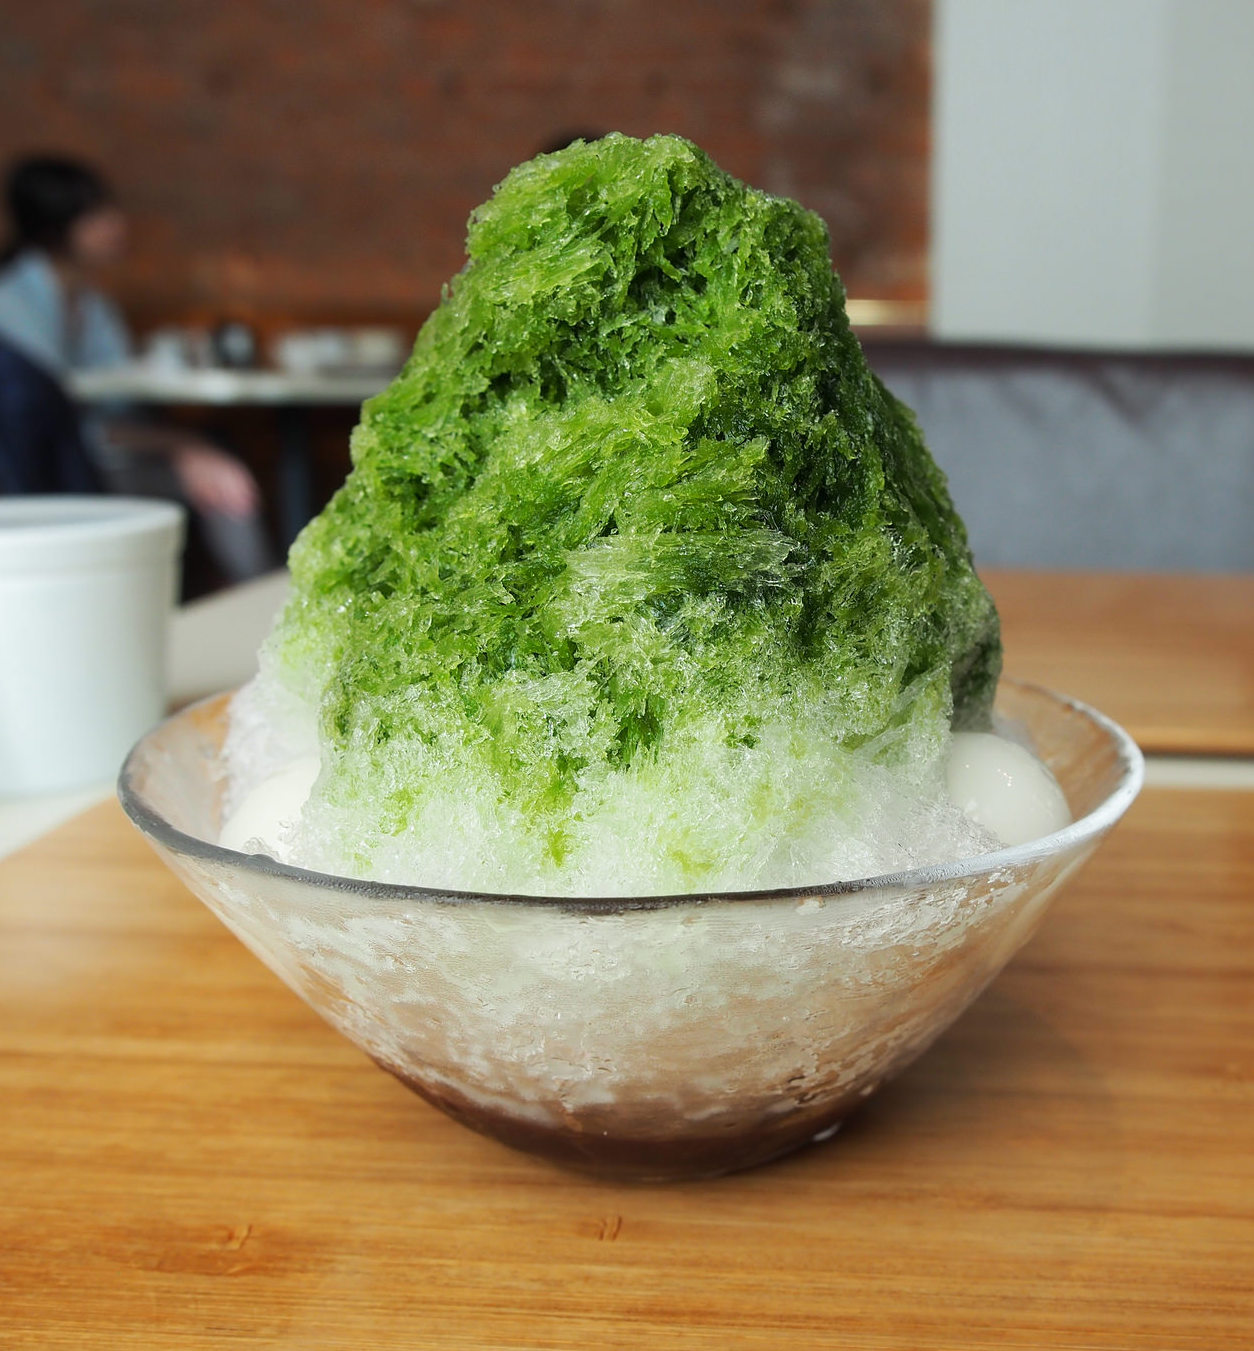 Matcha-flavored shaved ice is the perfect way to cool down. ©TOKI